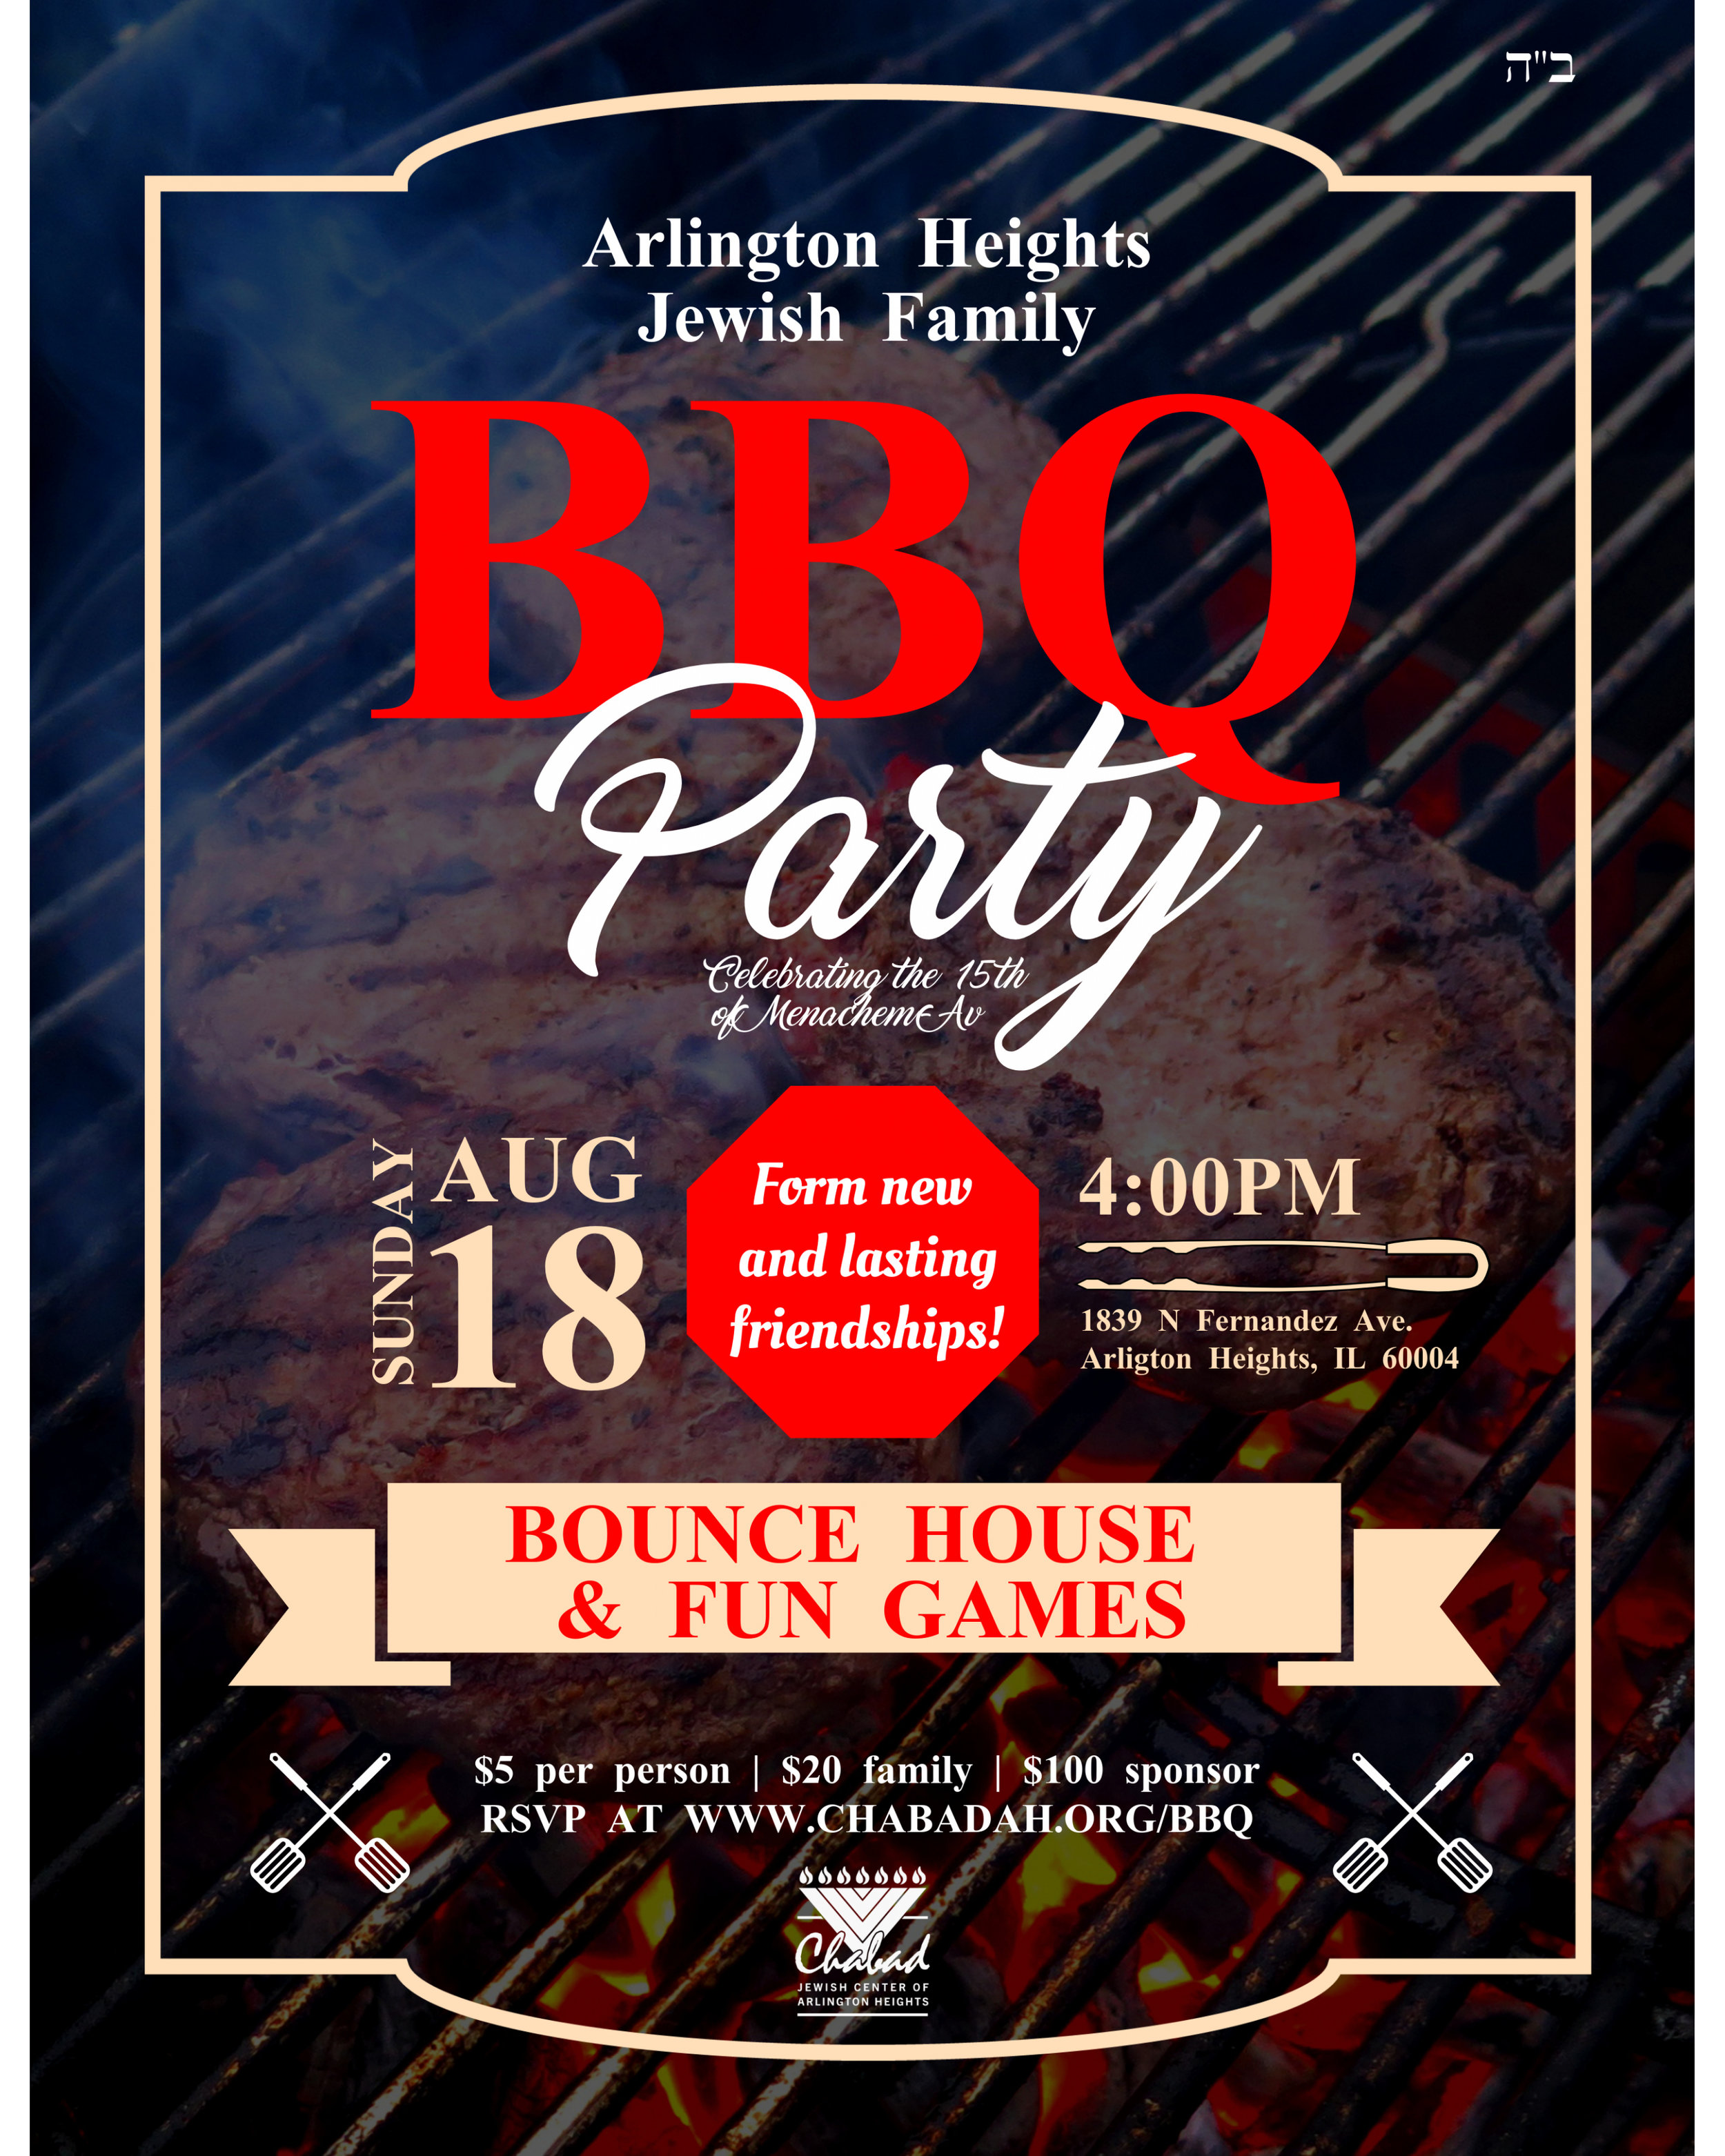 Copy of BBQ Party Flyer (1) (2).jpg